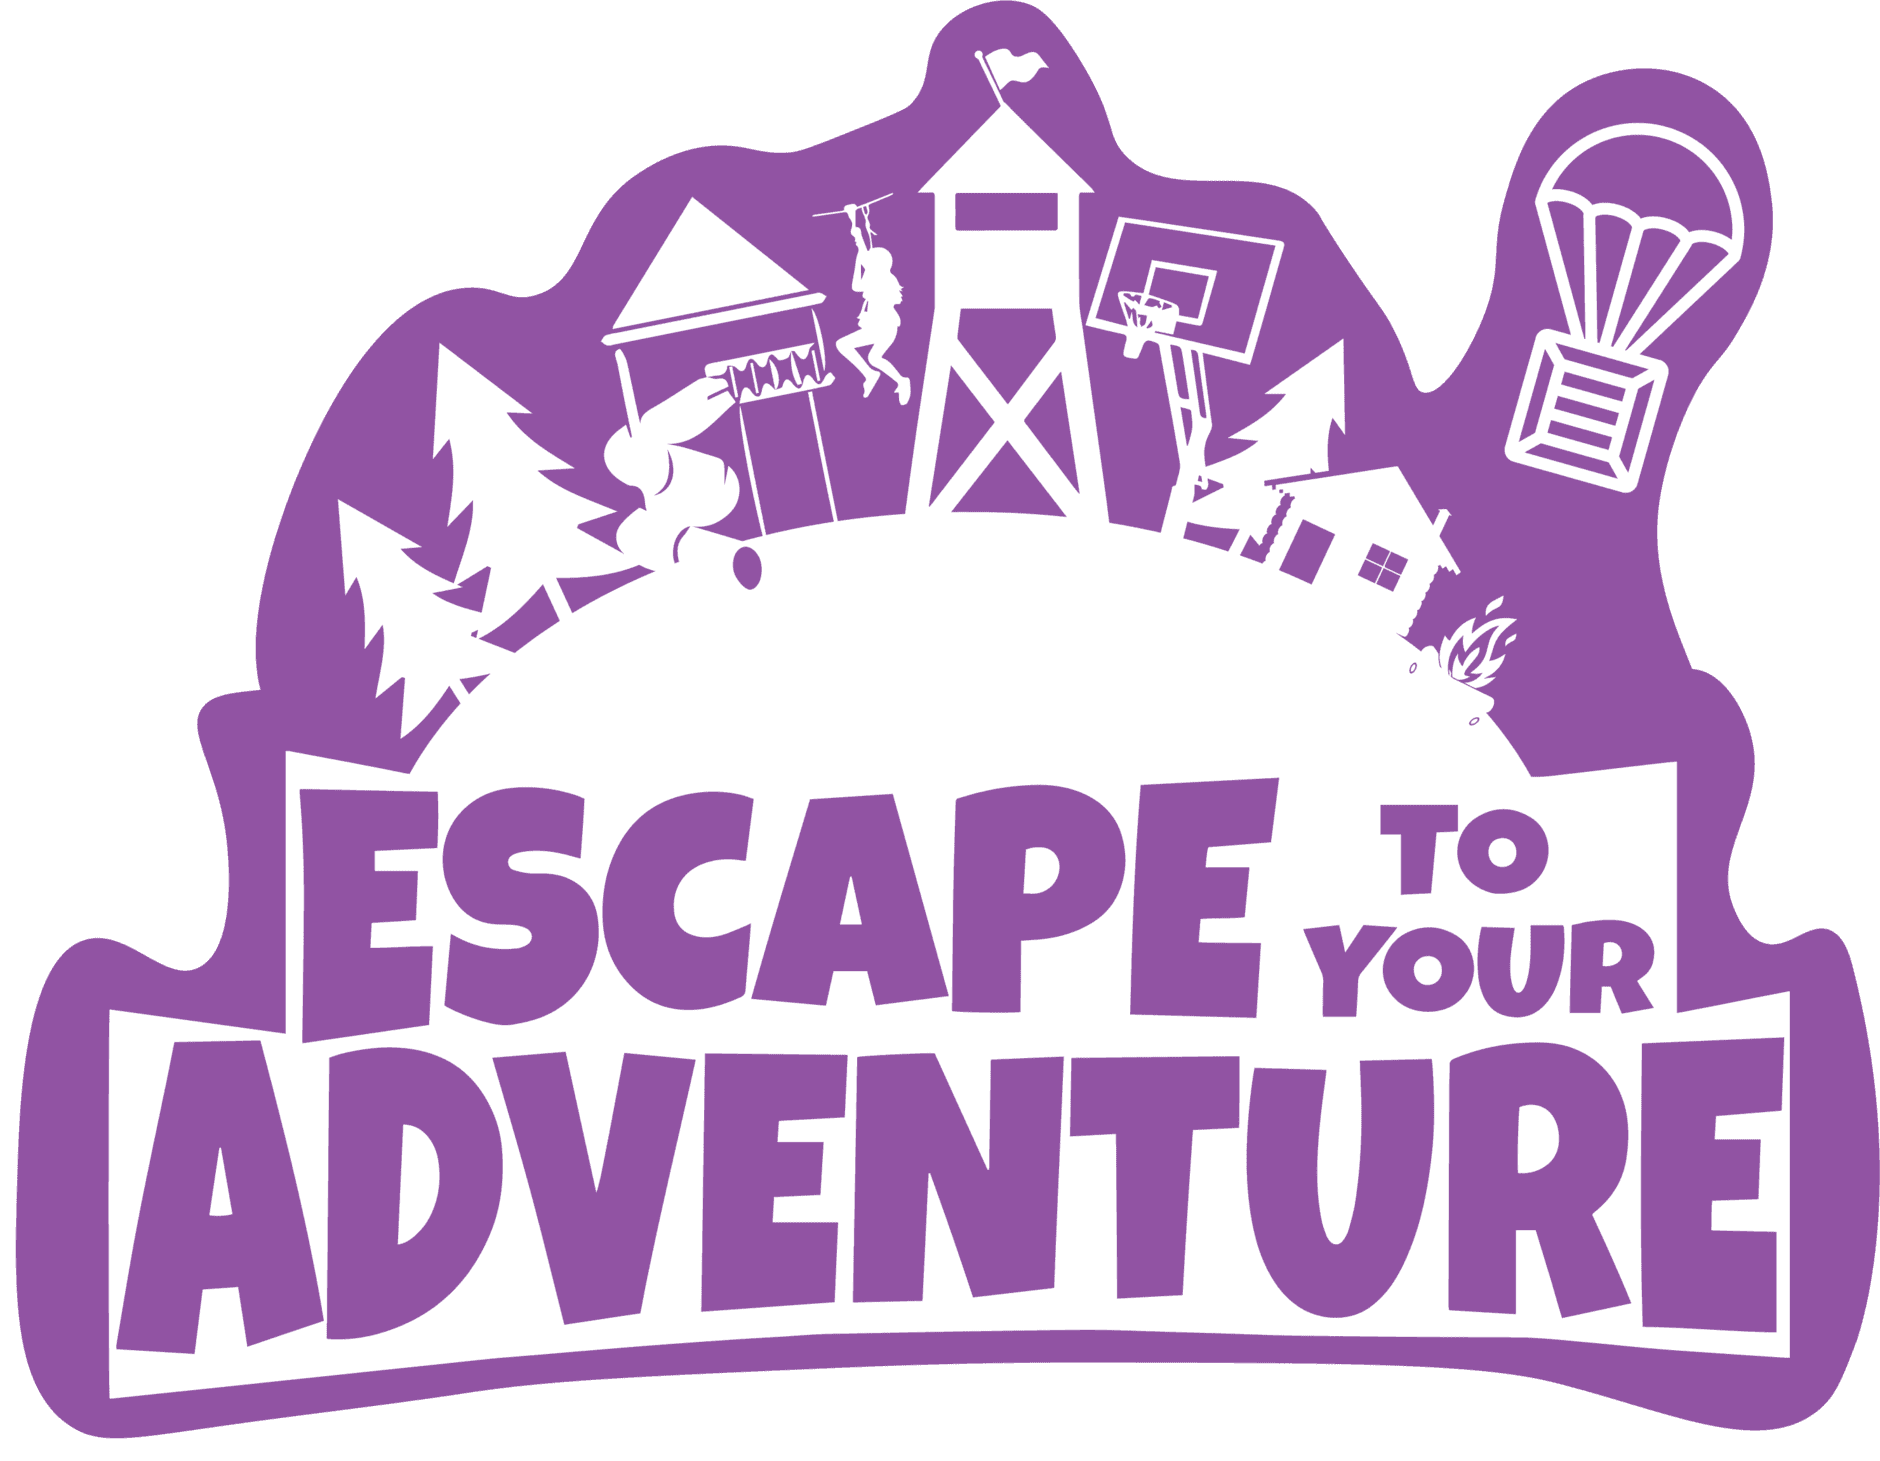 Escape-To-Adventure-Purple